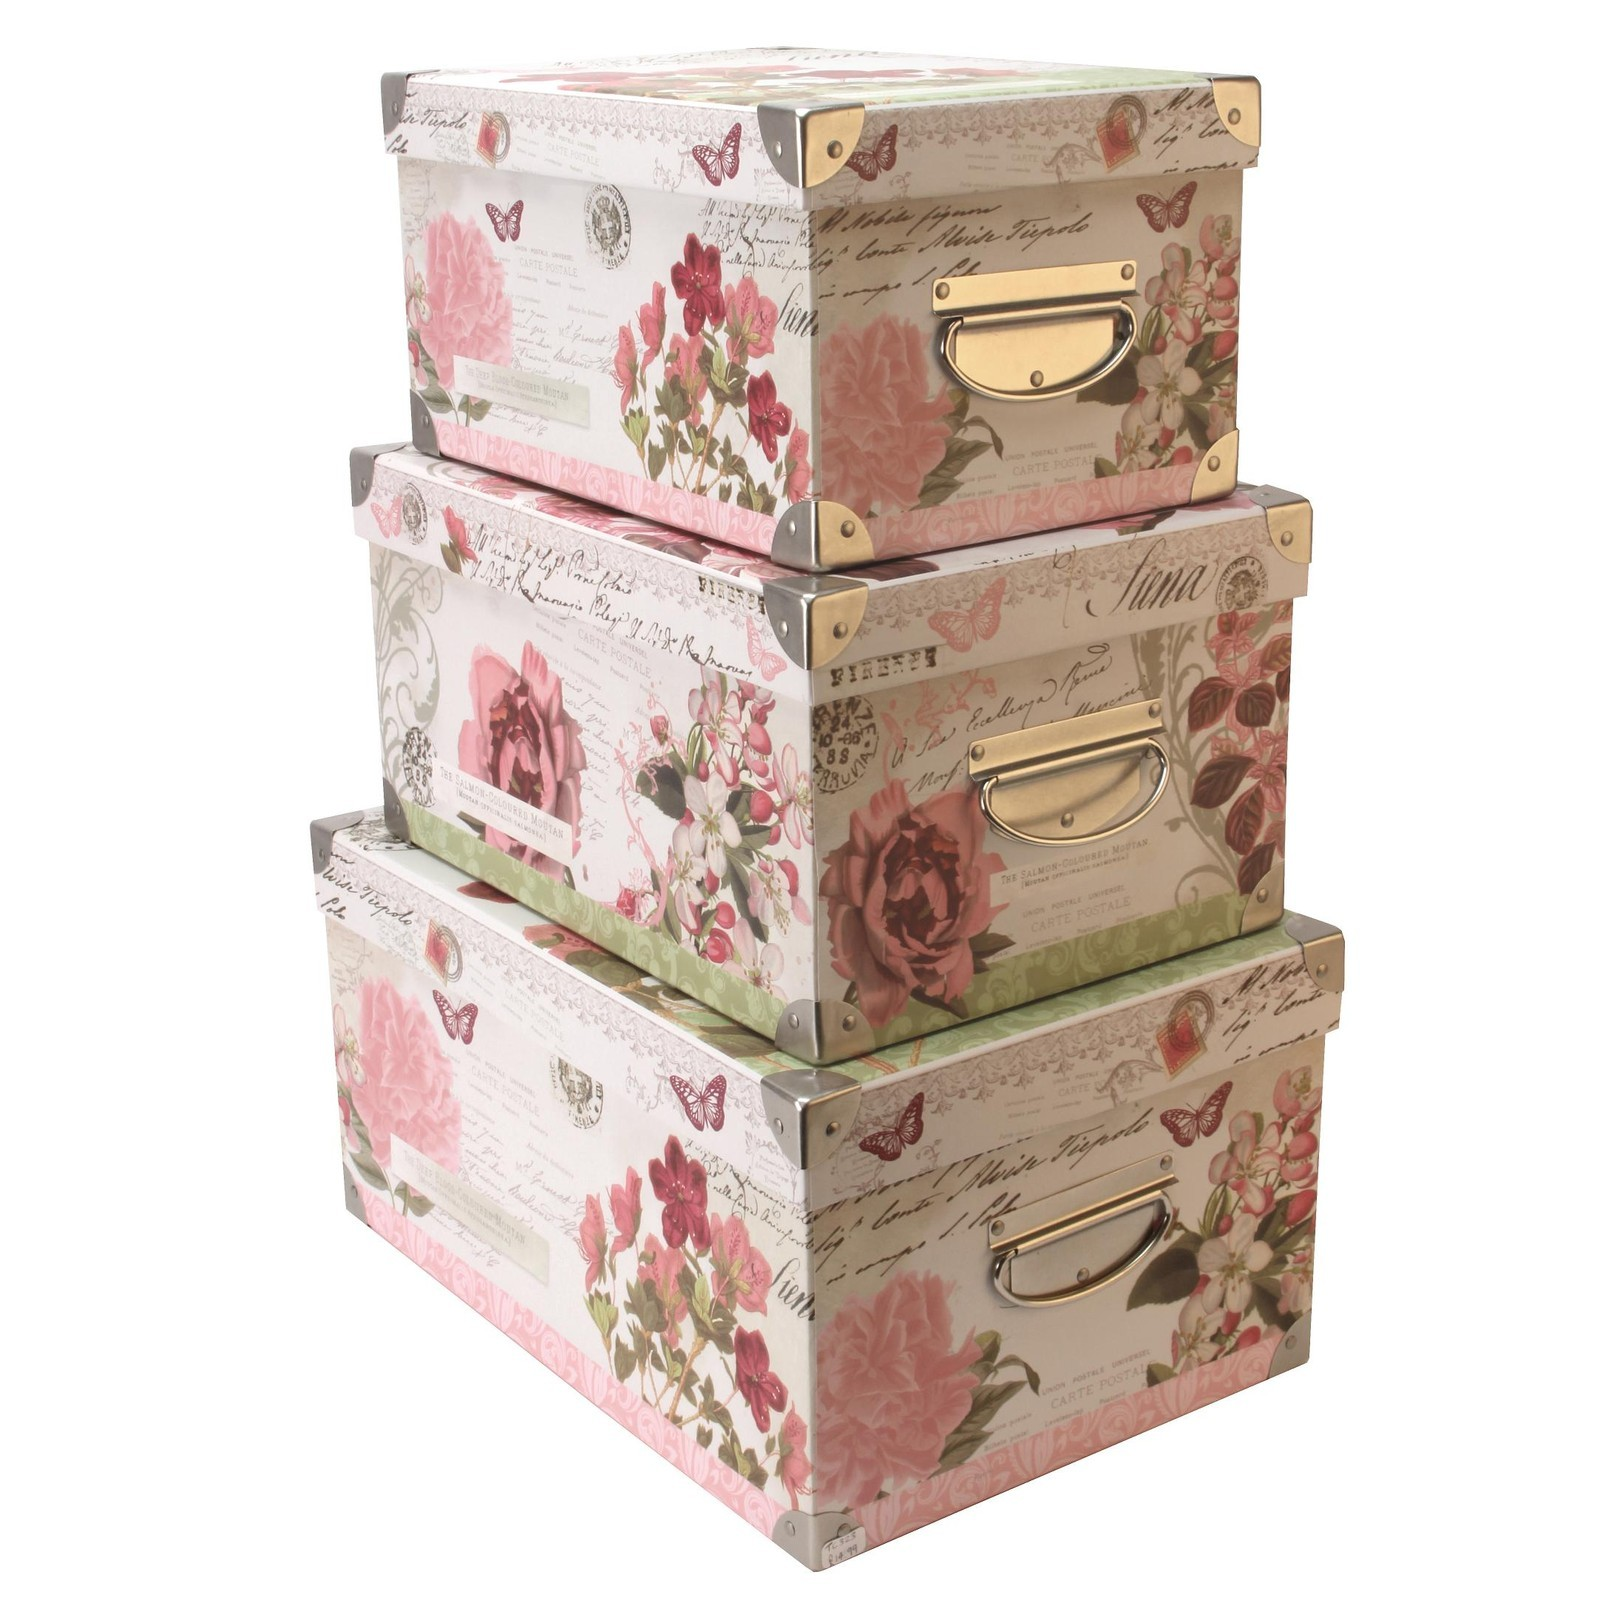 Decorative Boxes Tk Maxx : Pretty storage boxes l canvas box with lid by